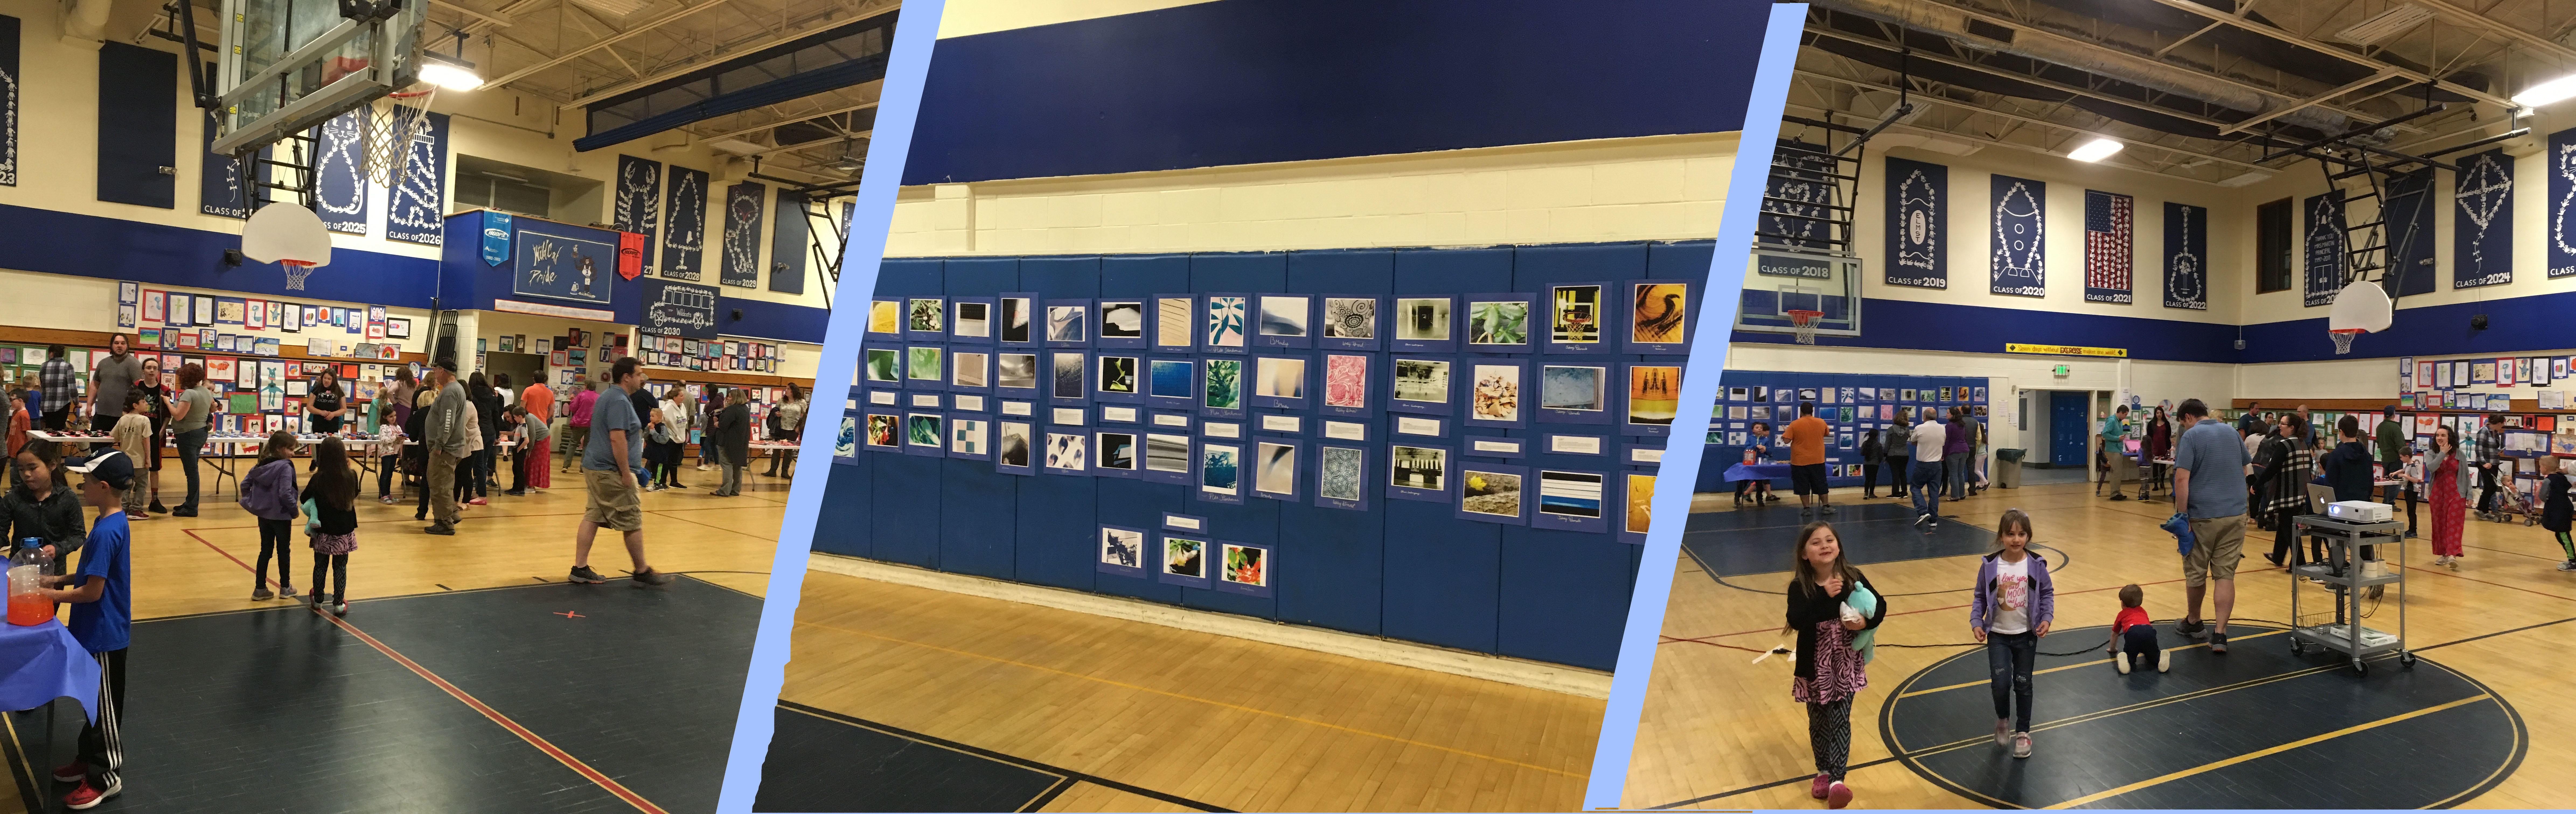 The RSU16 K-6 District Art Show includes one artwork from each elementary student in the district (MCS, ESS, PCS).  The Art Show was held at Elm Street School in Mechanic Falls on Thursday, May 23, 2019.